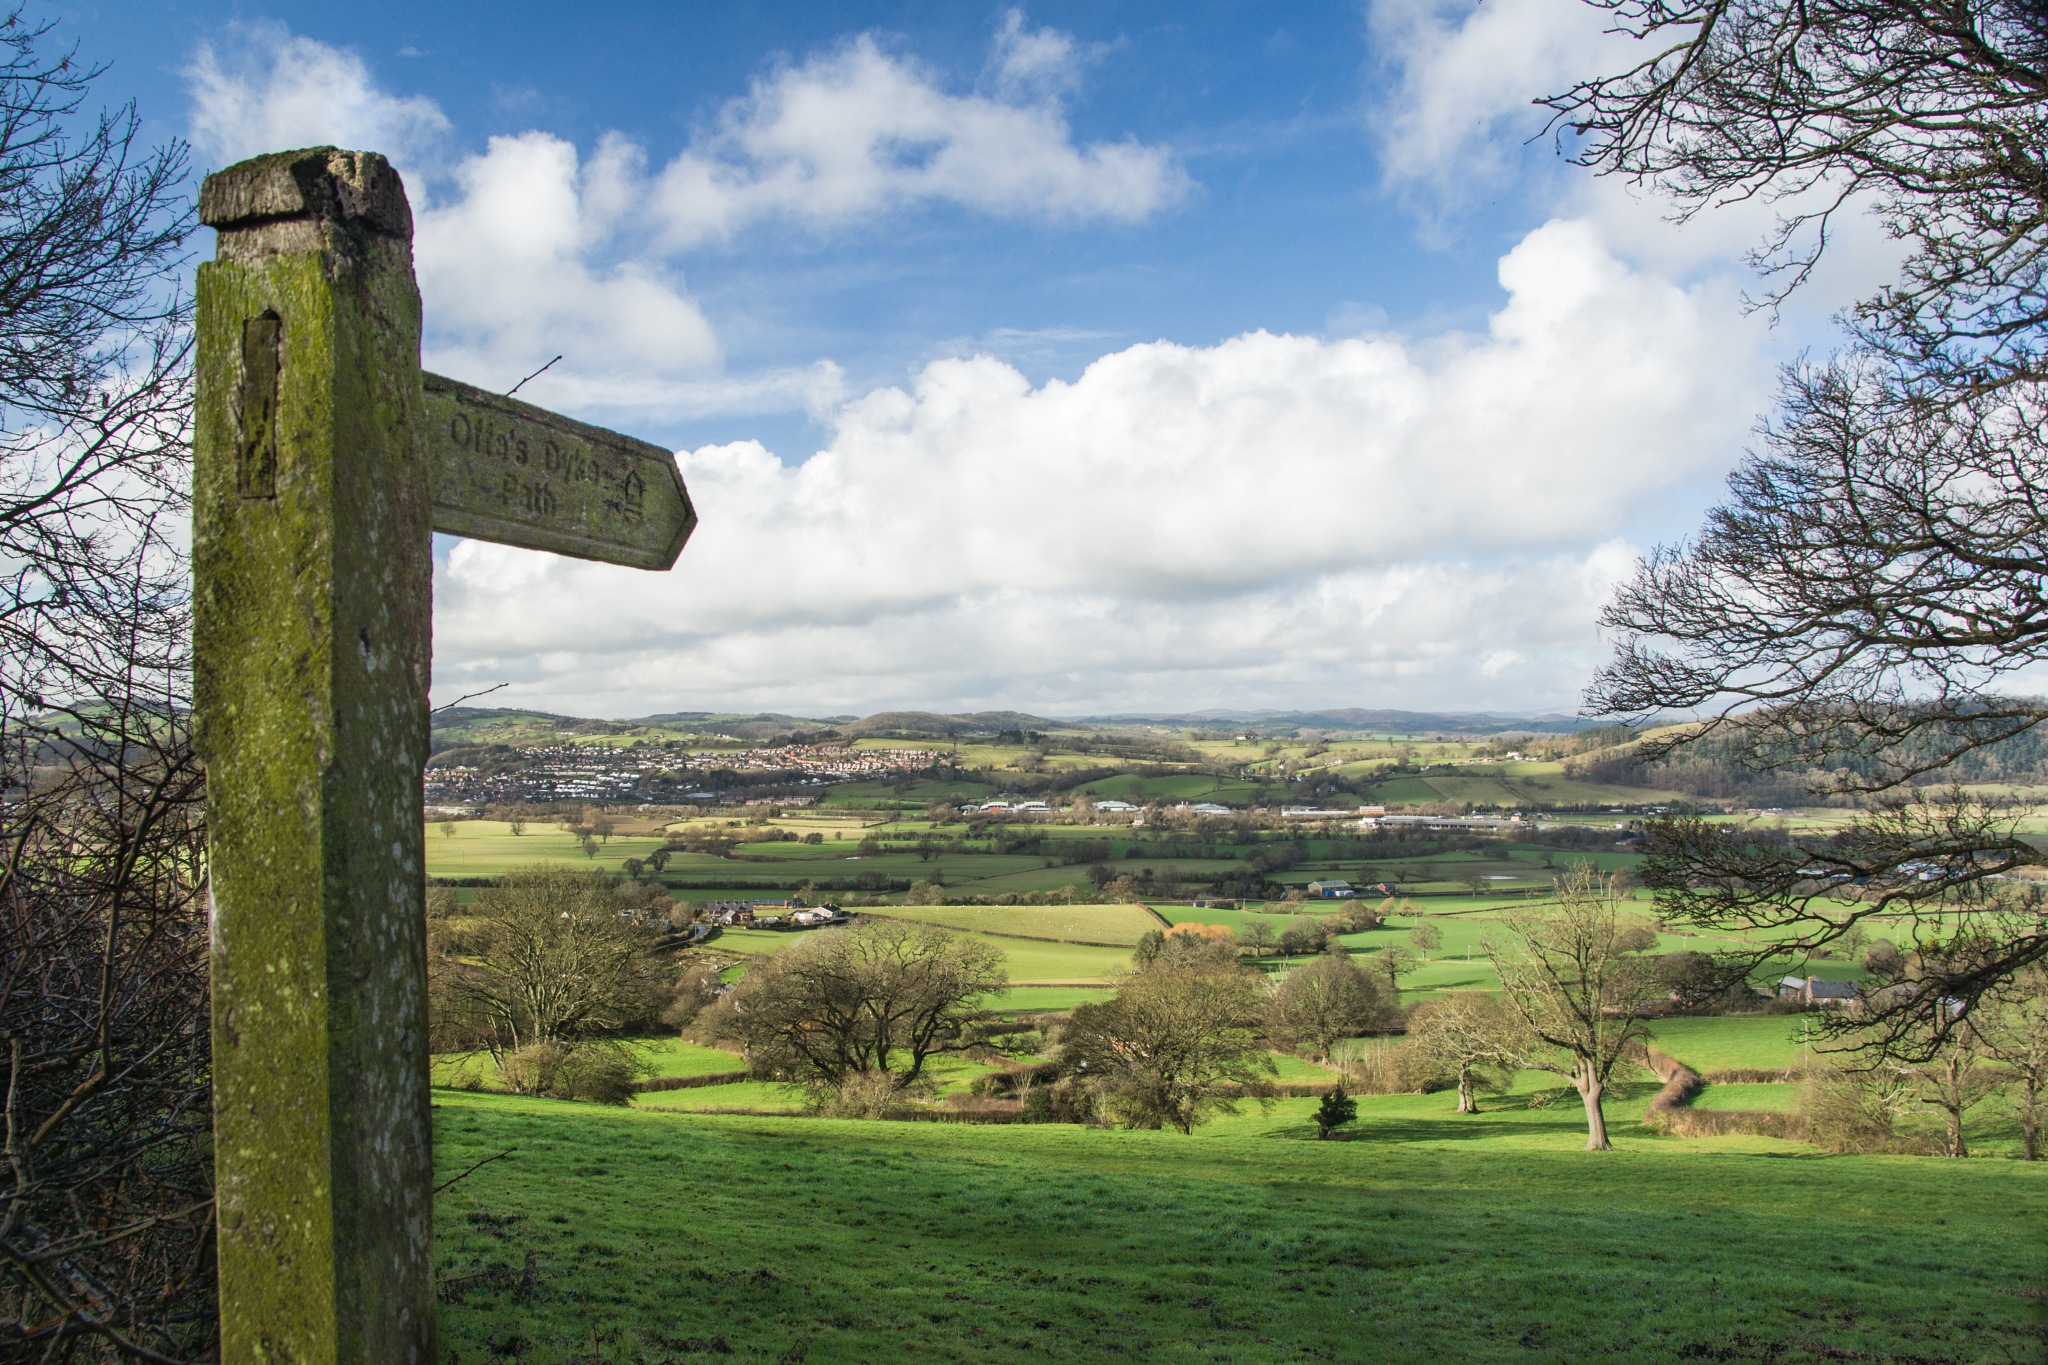 Offa's Dyke Finger Post & Severn Valley by rfoulkes